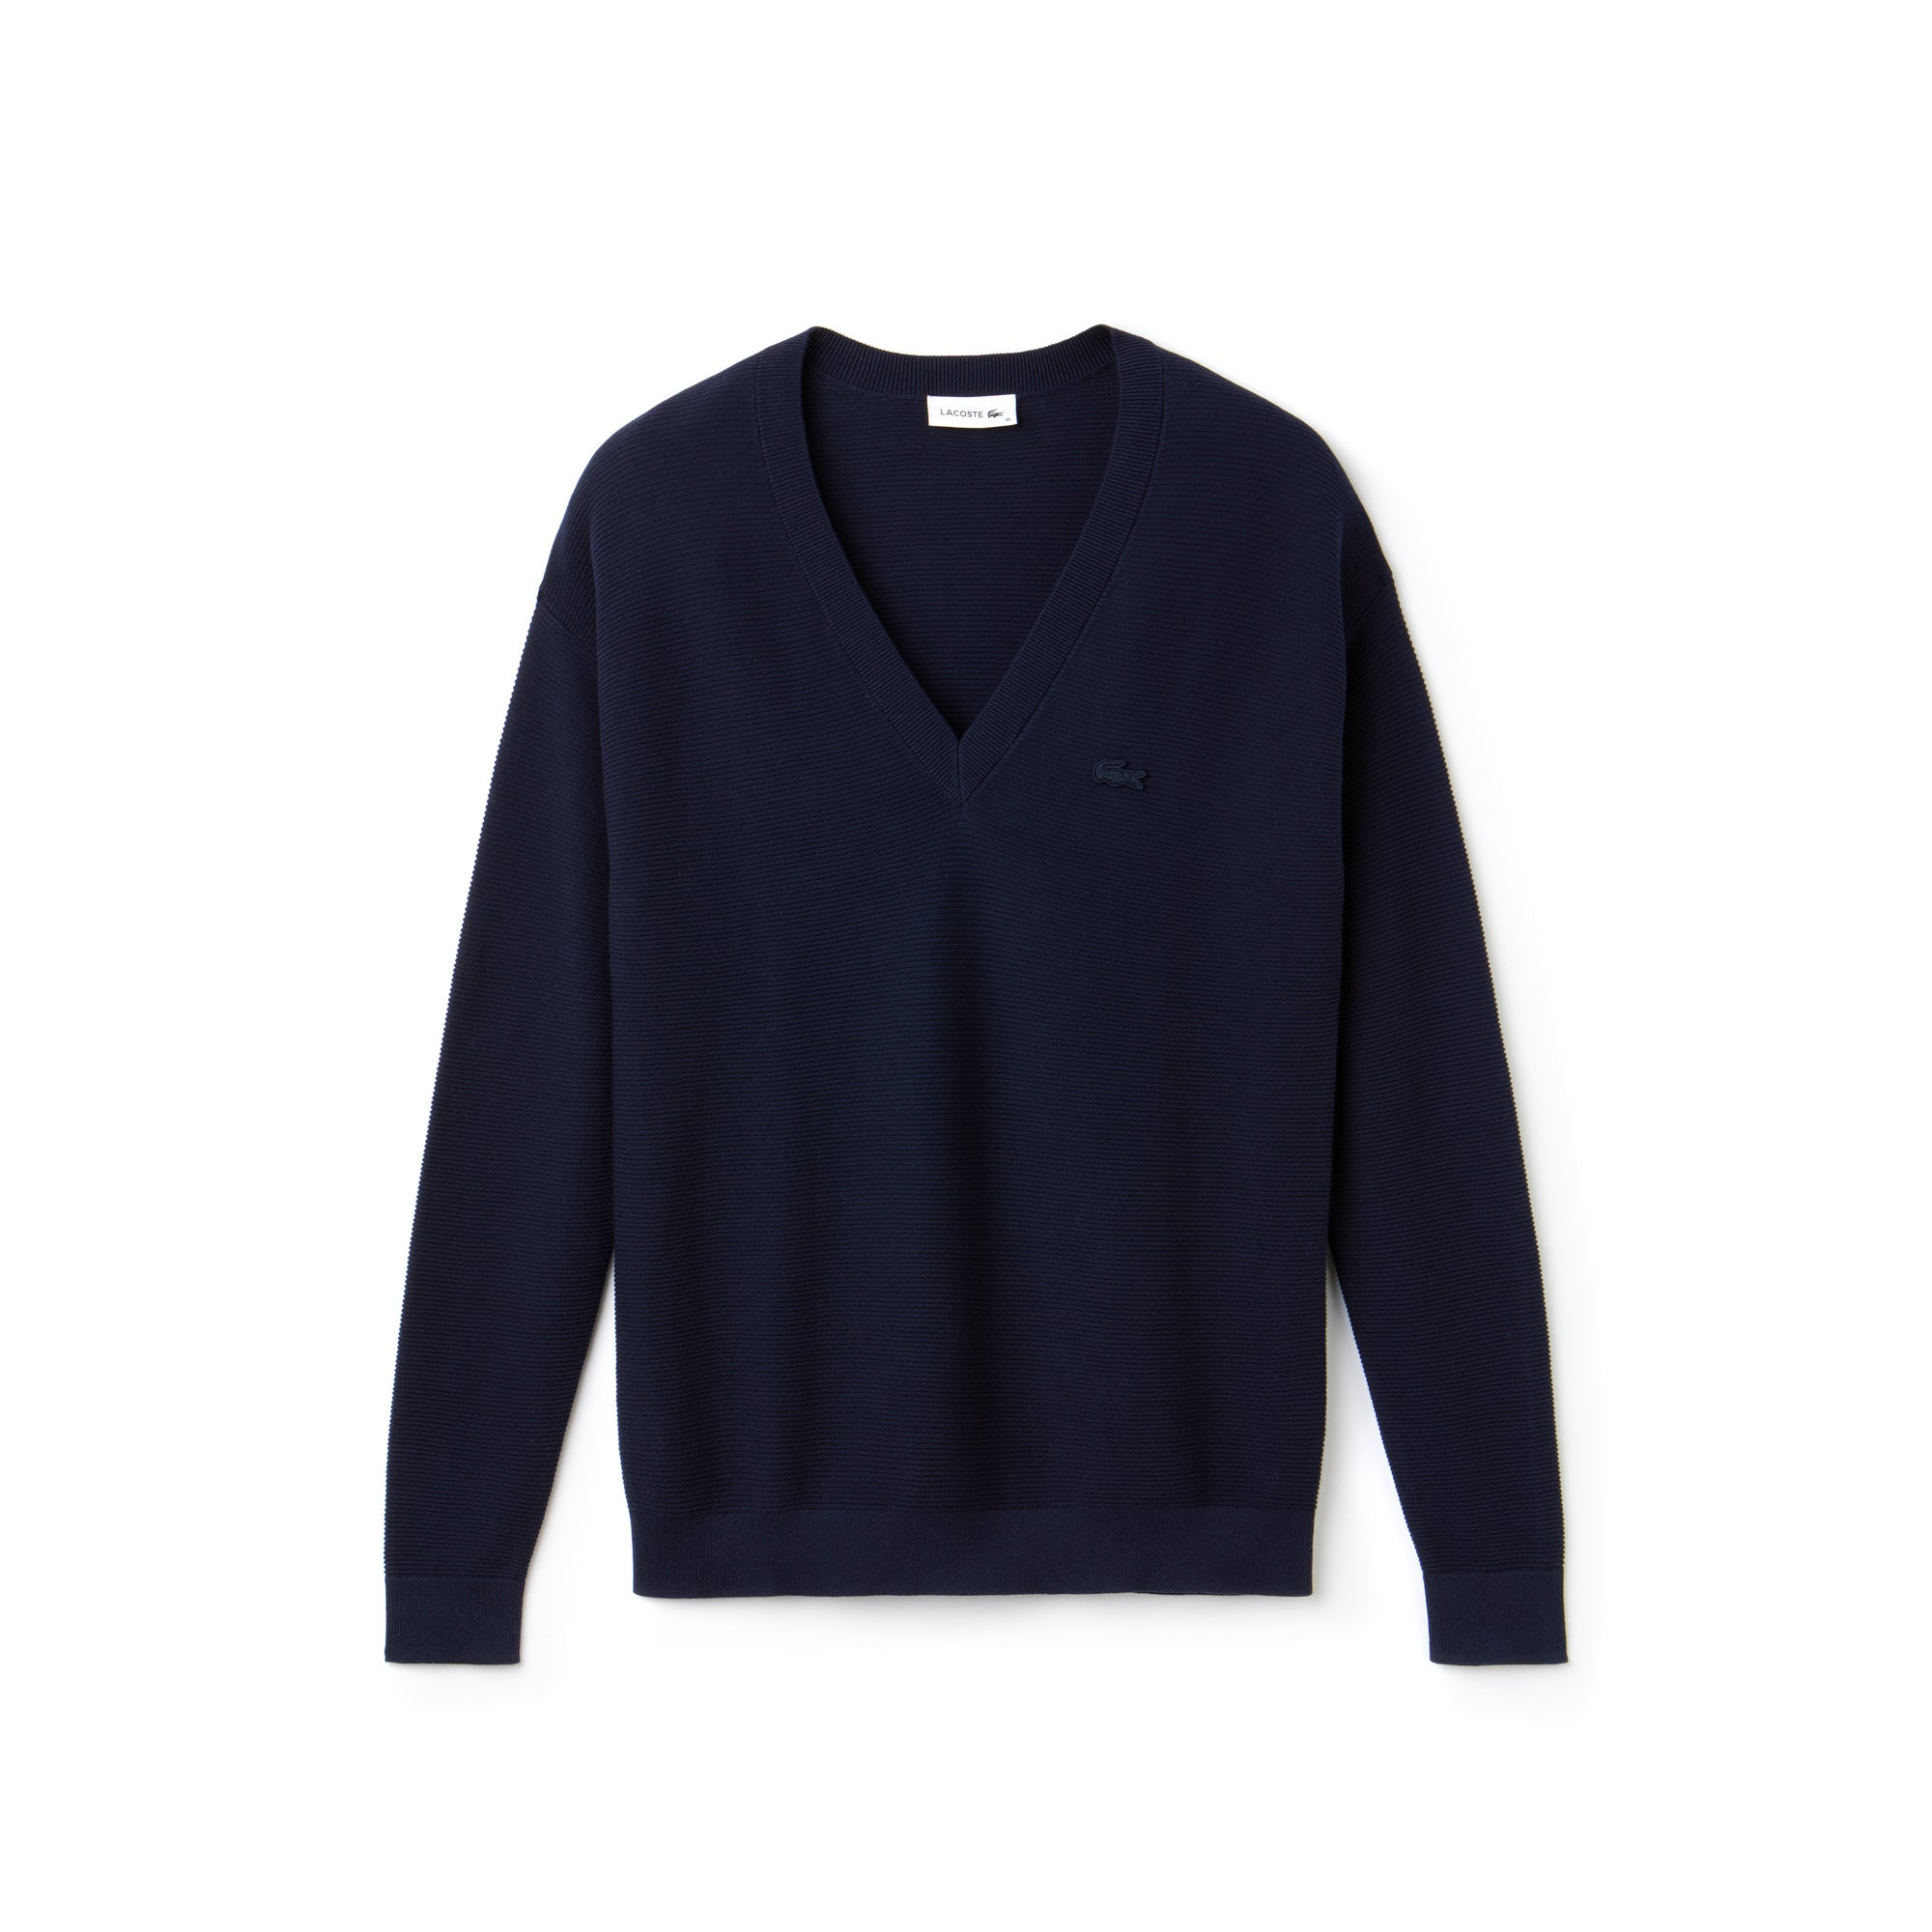 Women's V-Neck Seed Stitch Cotton Sweater_NAVY BLUE